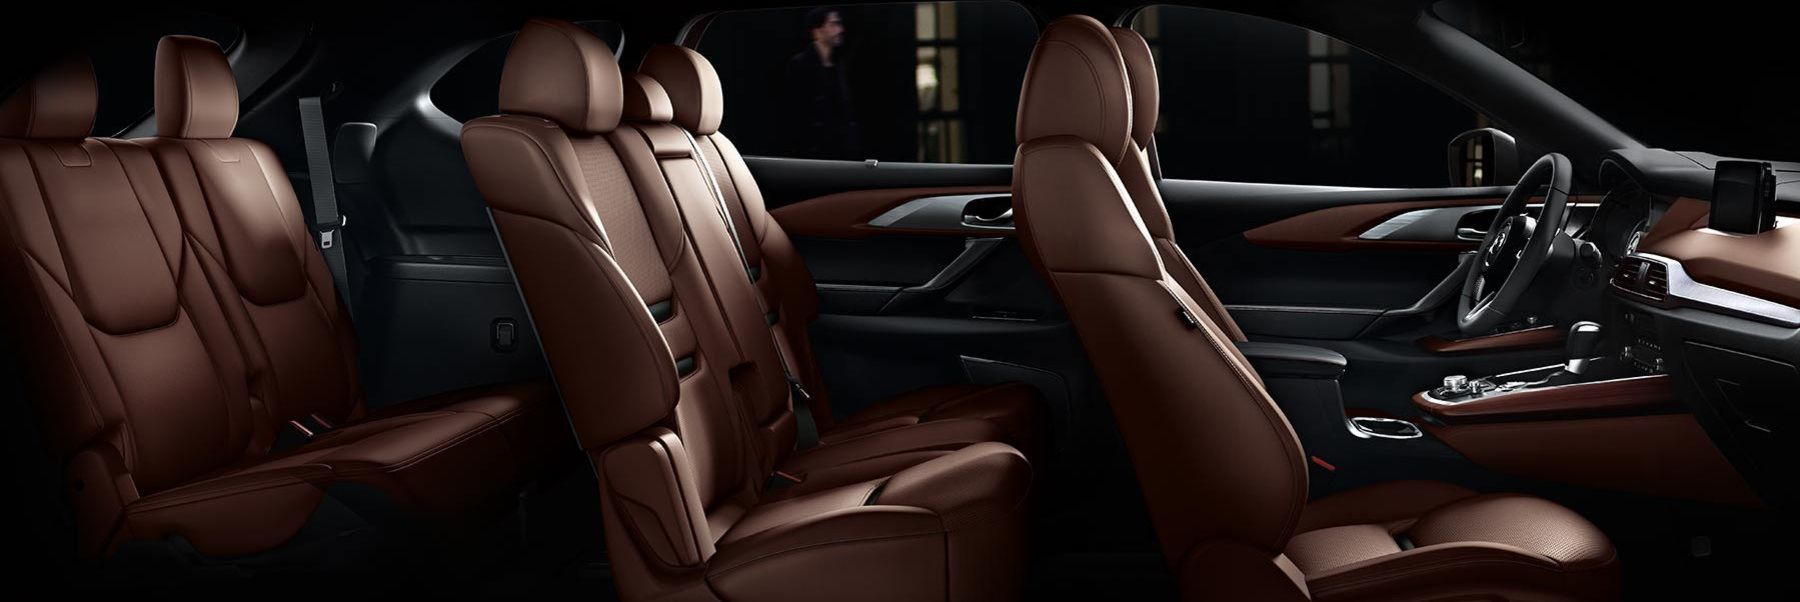 Three Rows of Seats in the 2019 CX-9